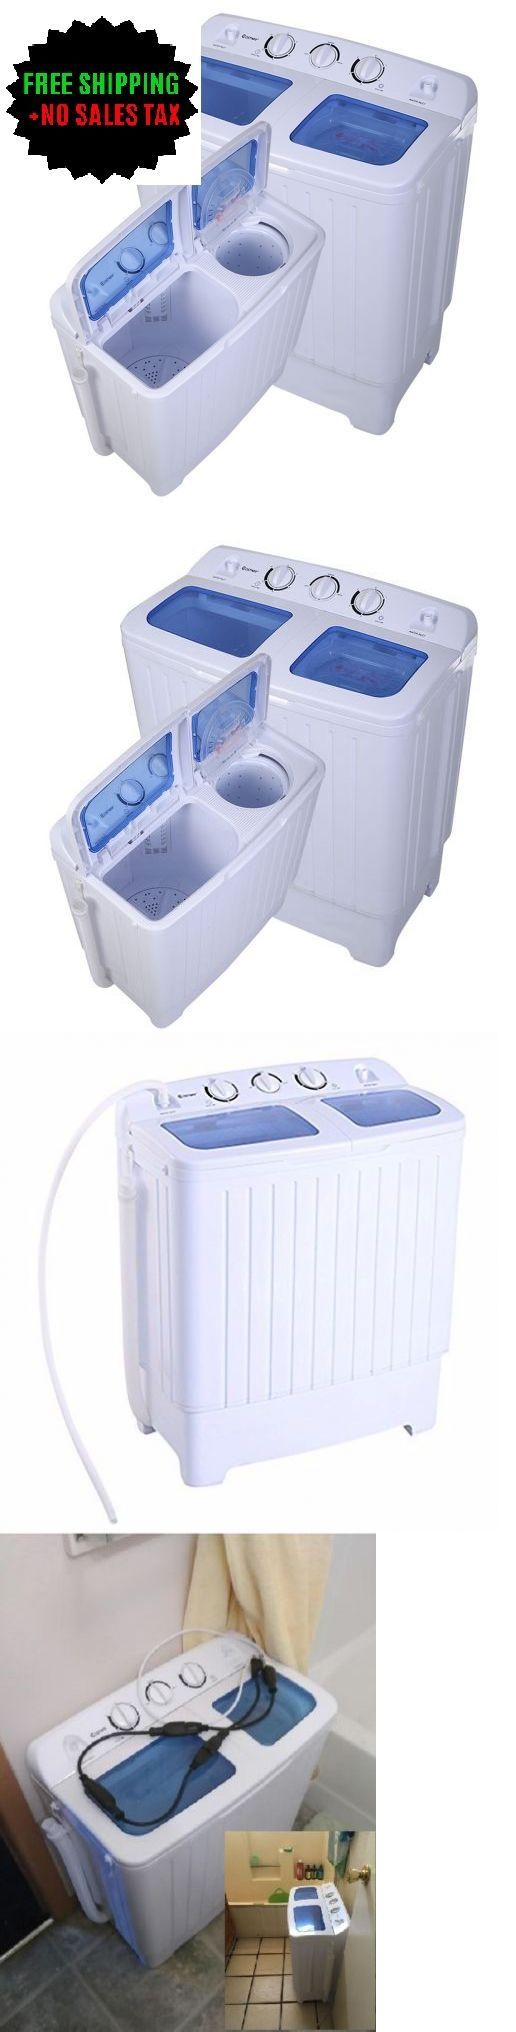 Best 25+ Apartment washer and dryer ideas on Pinterest   Washing ...